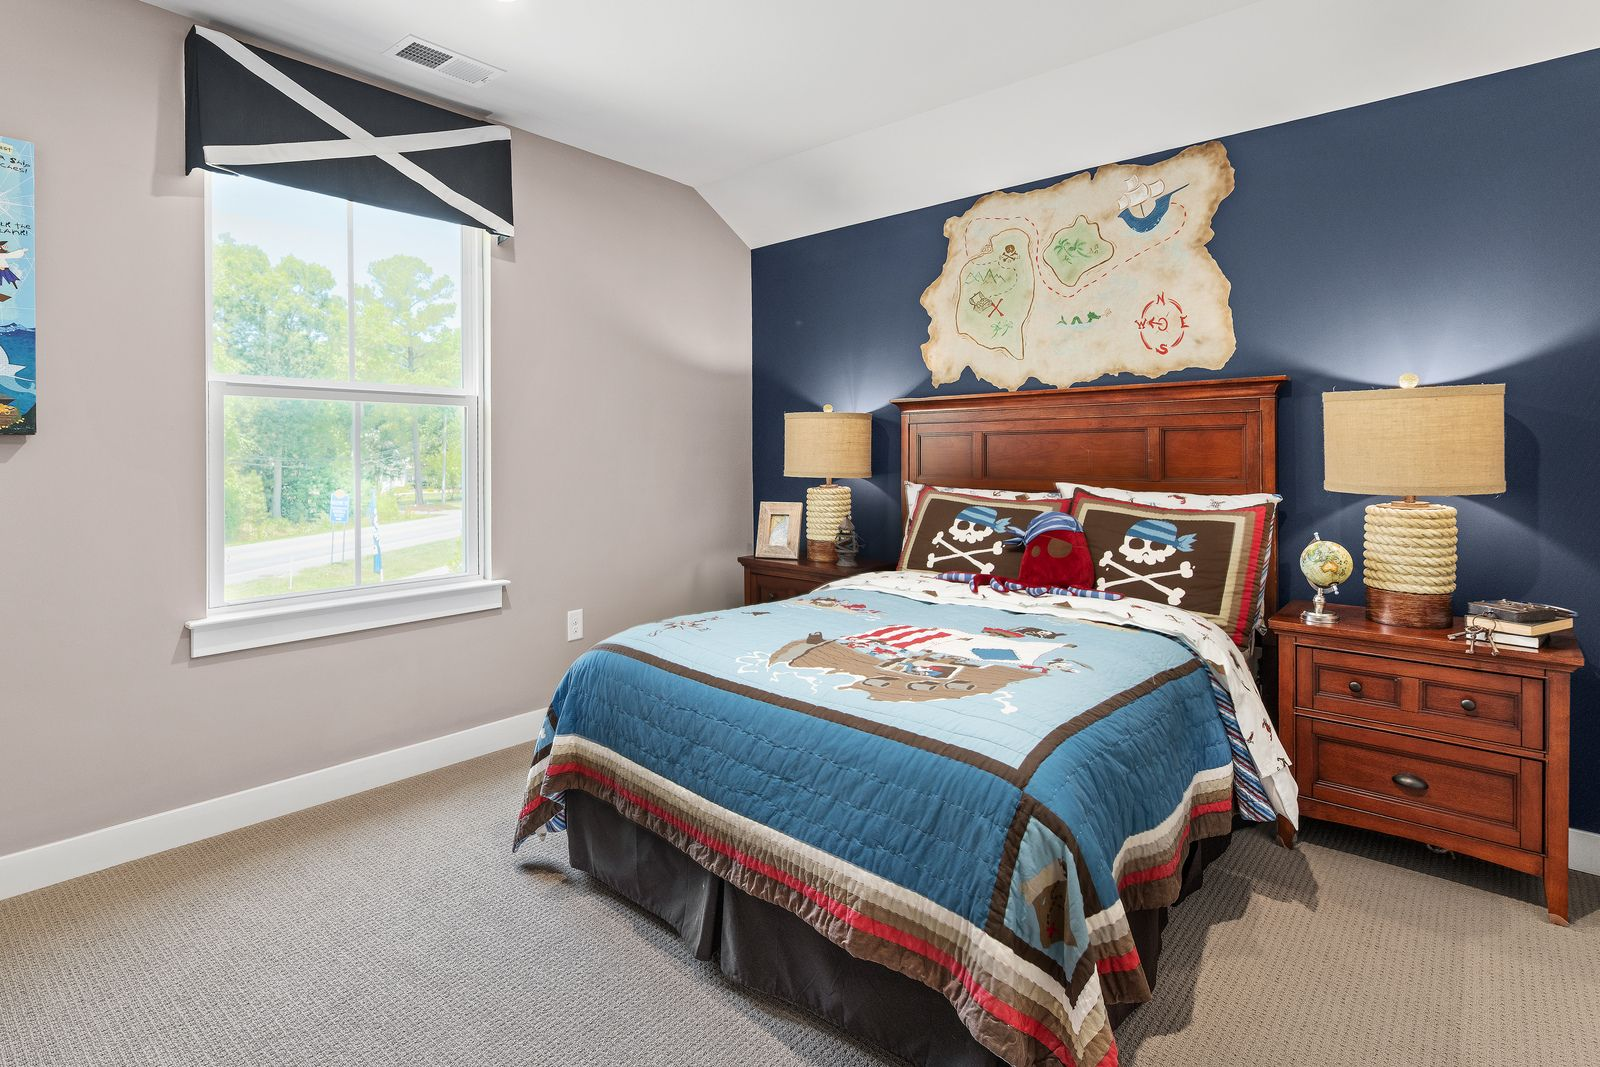 Bedroom featured in the Alberti 2 Story By Ryan Homes in Chicago, IL